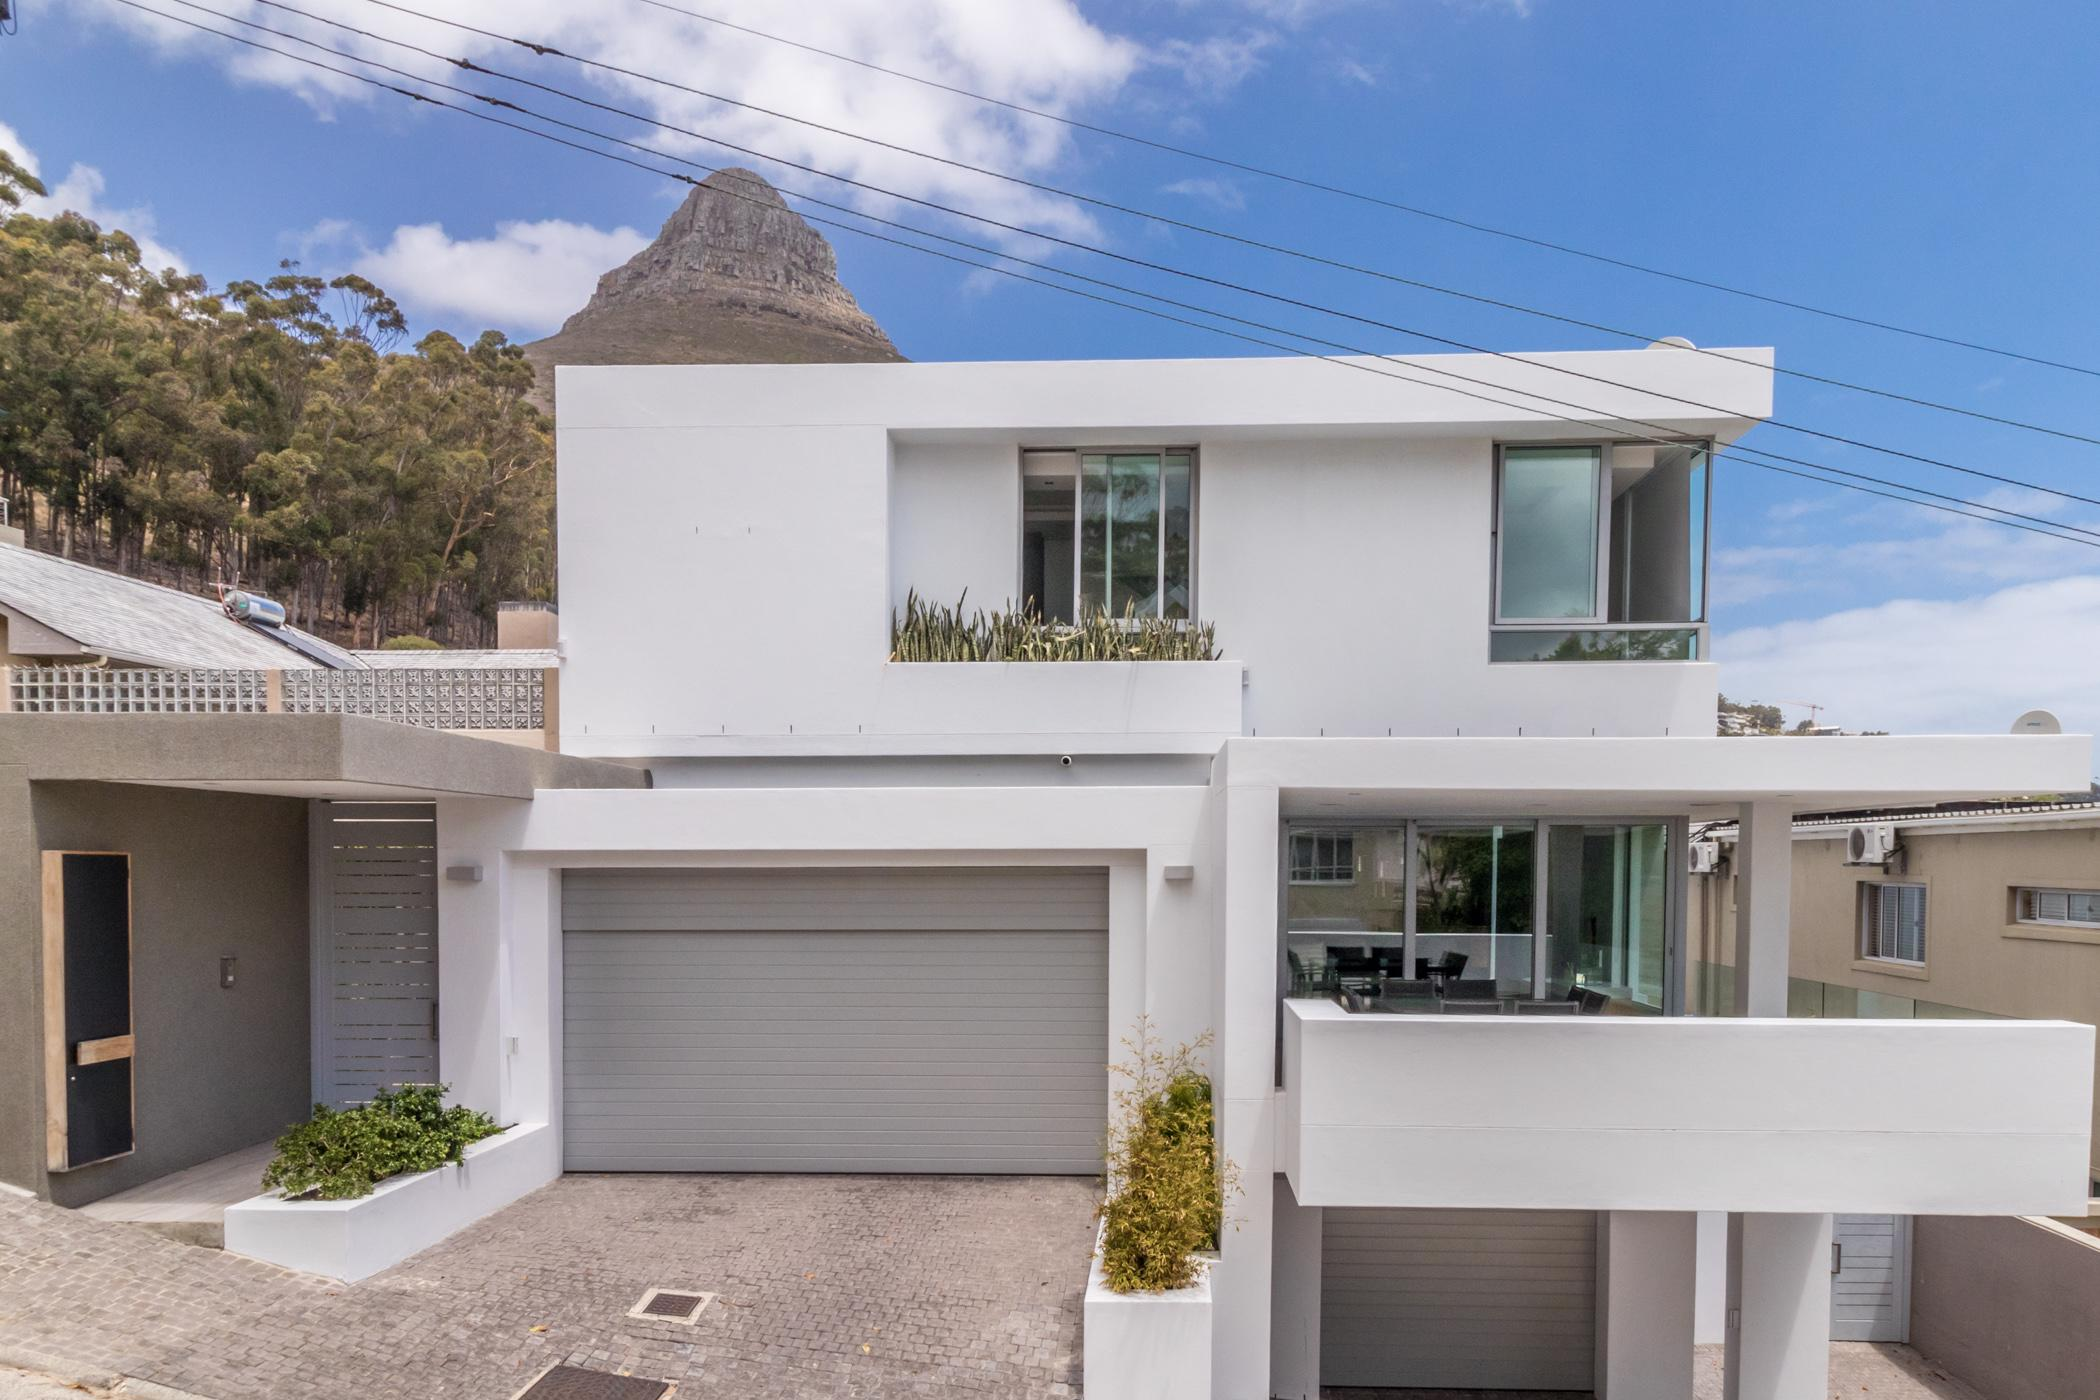 5 bedroom house for sale in Fresnaye